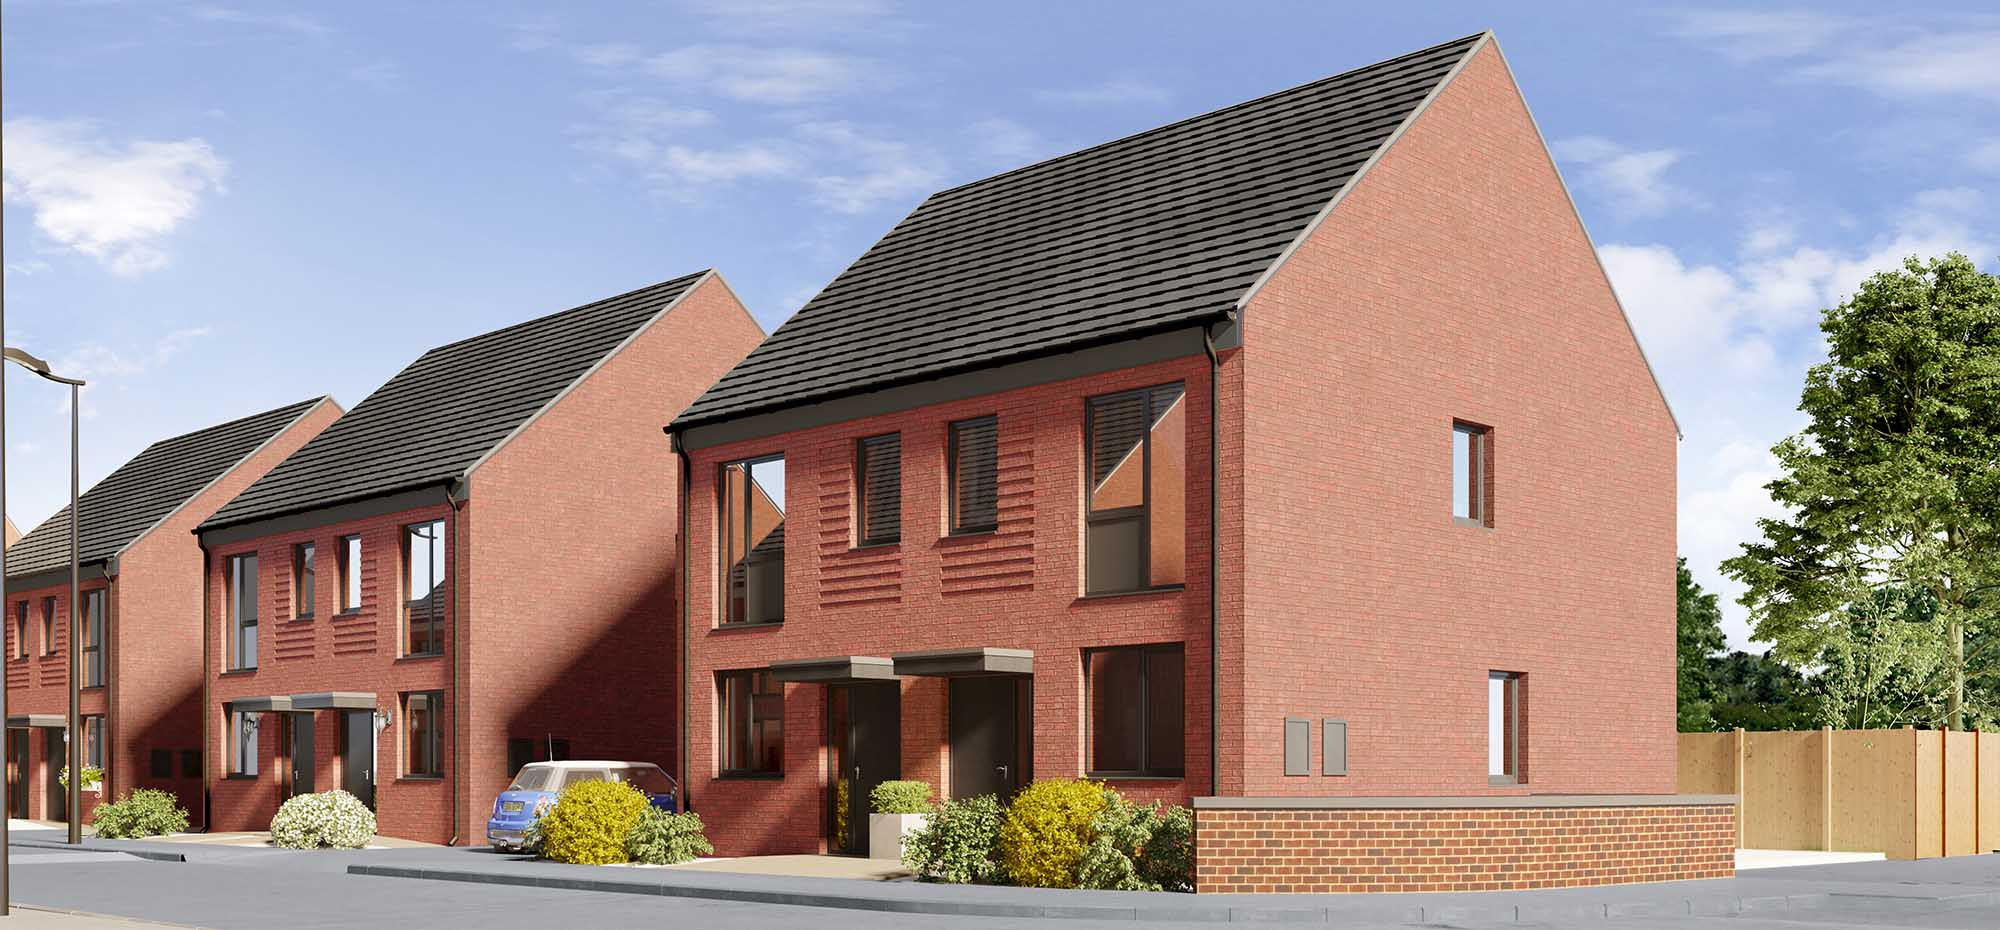 This image shows the external view of the Burdock house from Shape Homes York.